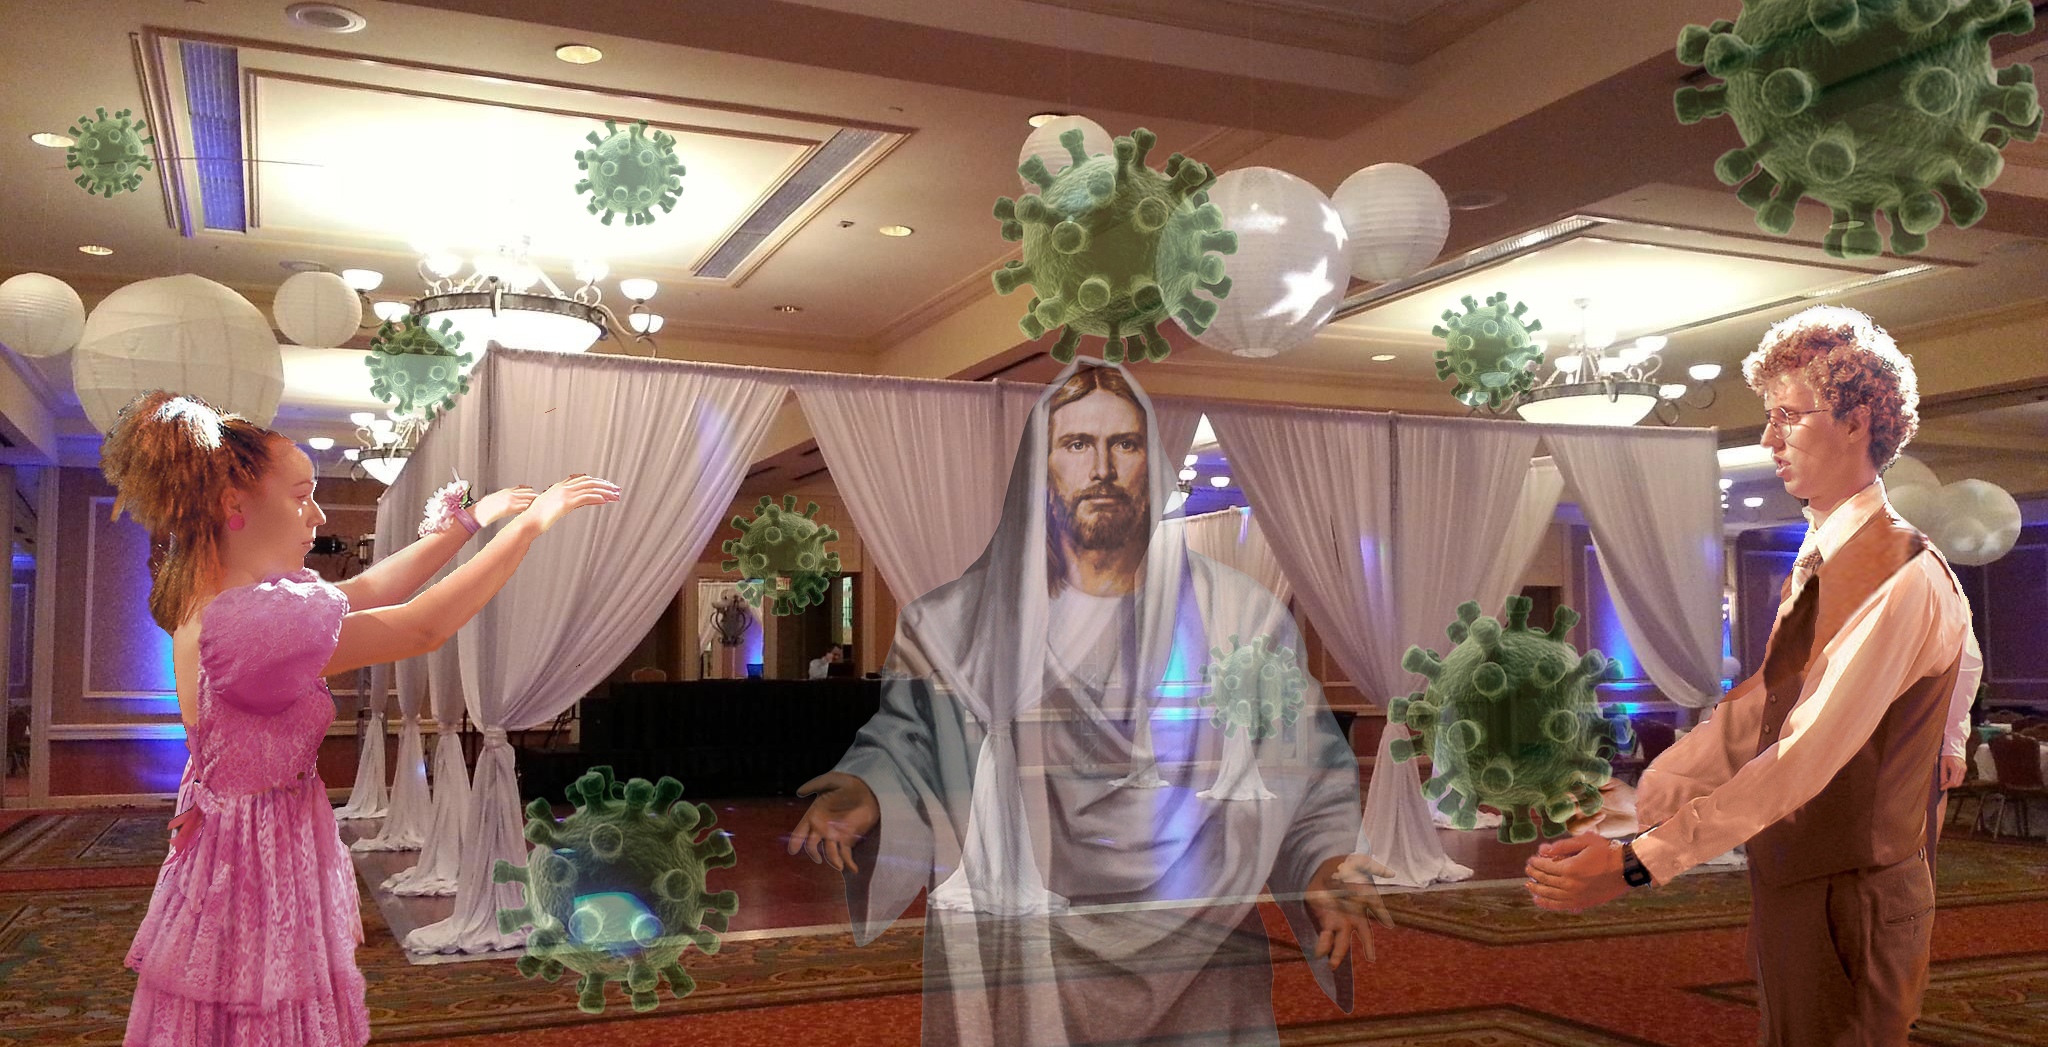 Catholic School Dance Held Using CDC Guidelines, Room Kept For Jesus And Coronavirus